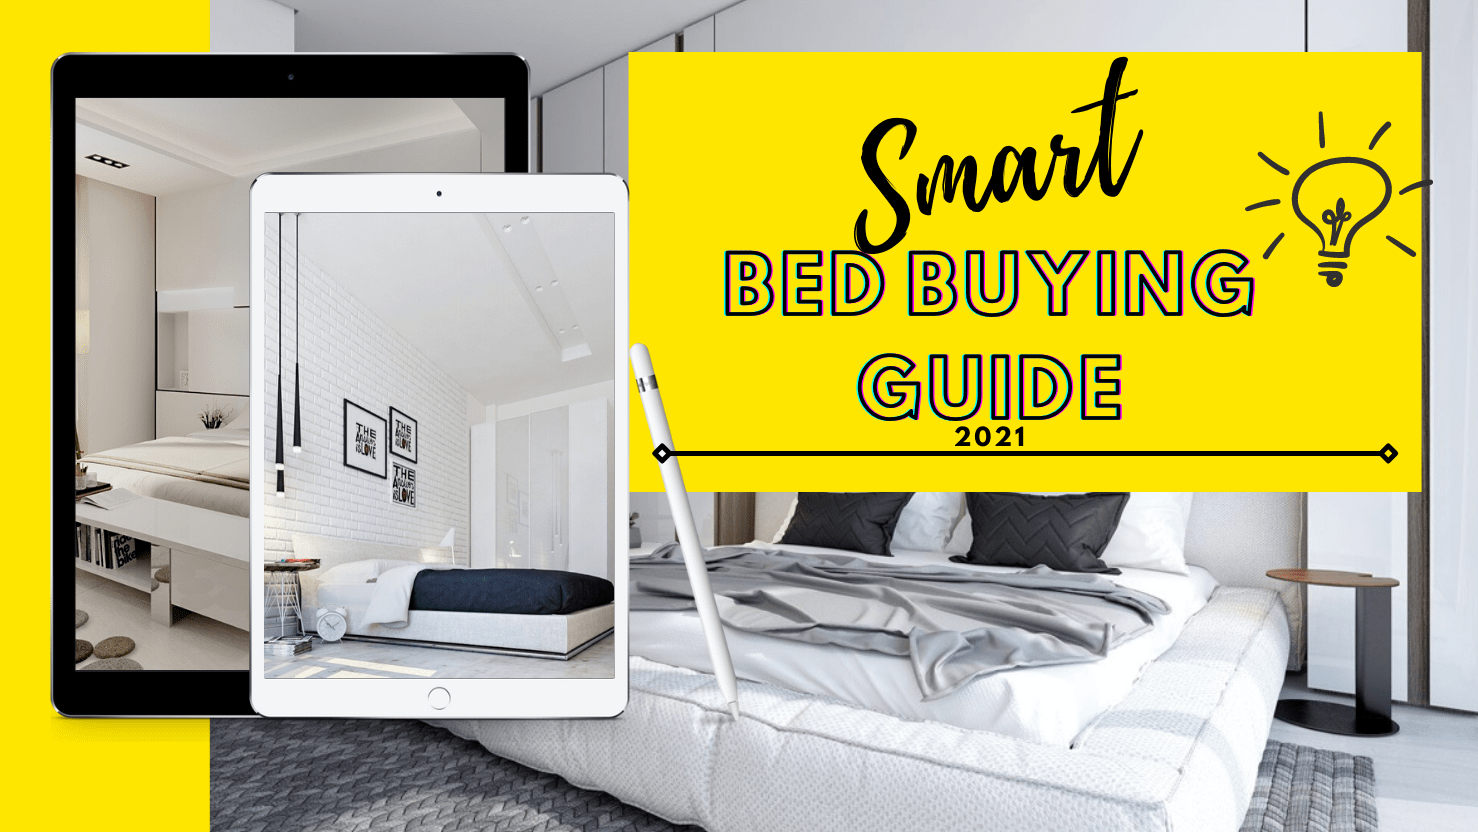 Beds: Smart Buying Tips